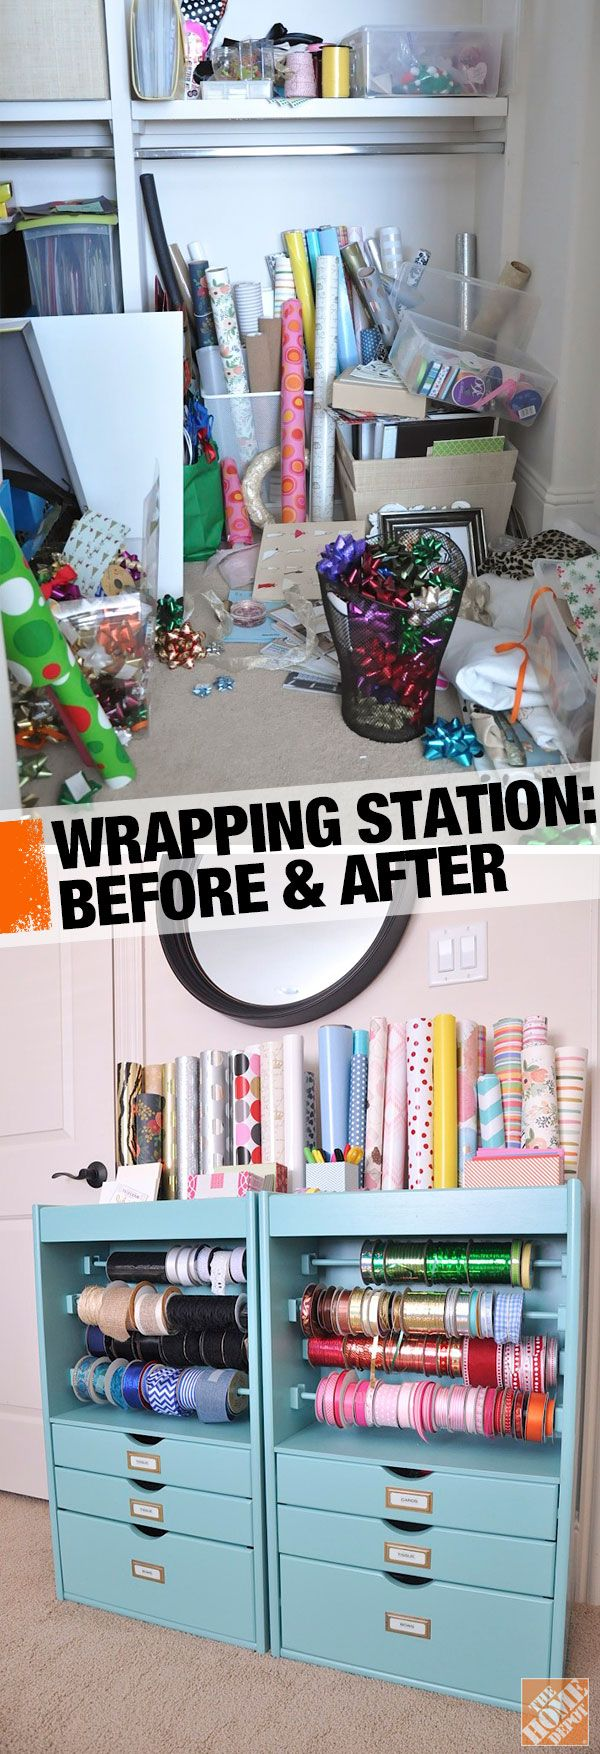 Before and after: From messy and unorganized to color-coded! An orderly gift wrapping station makes wrapping gifts a pleasure.